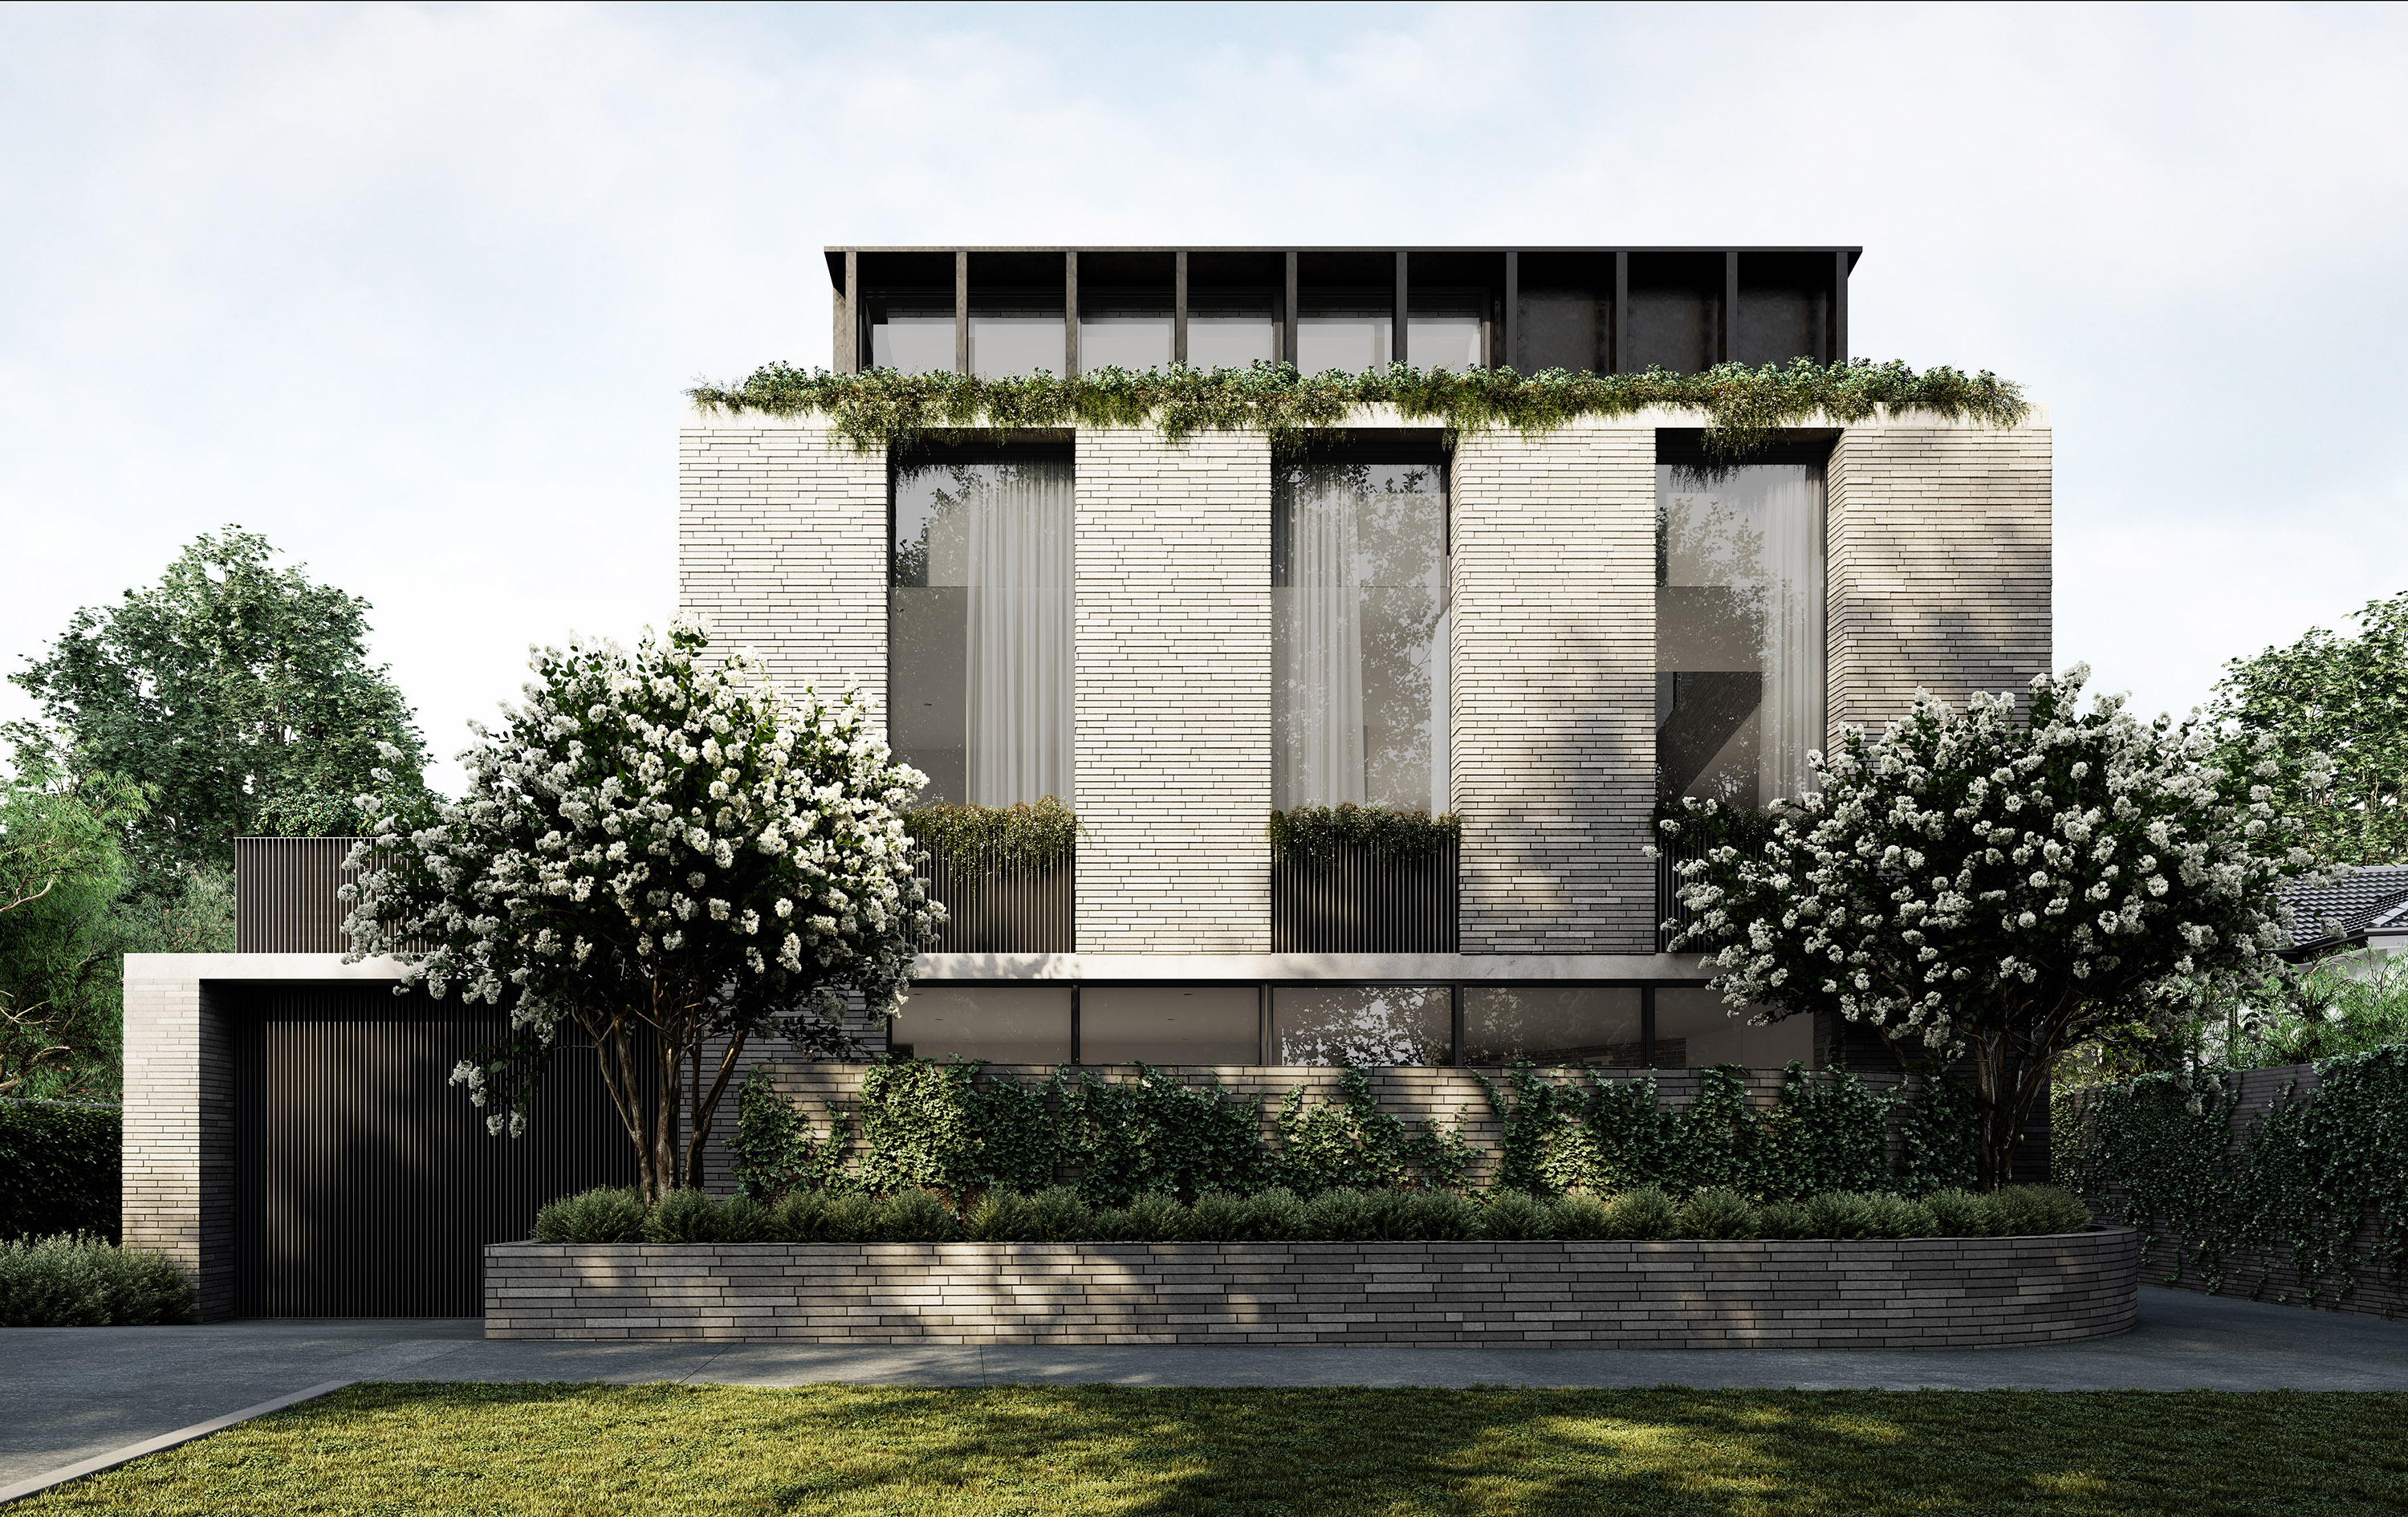 Toorak project has fashionable pedigree linked to KITX founder Kit Willow